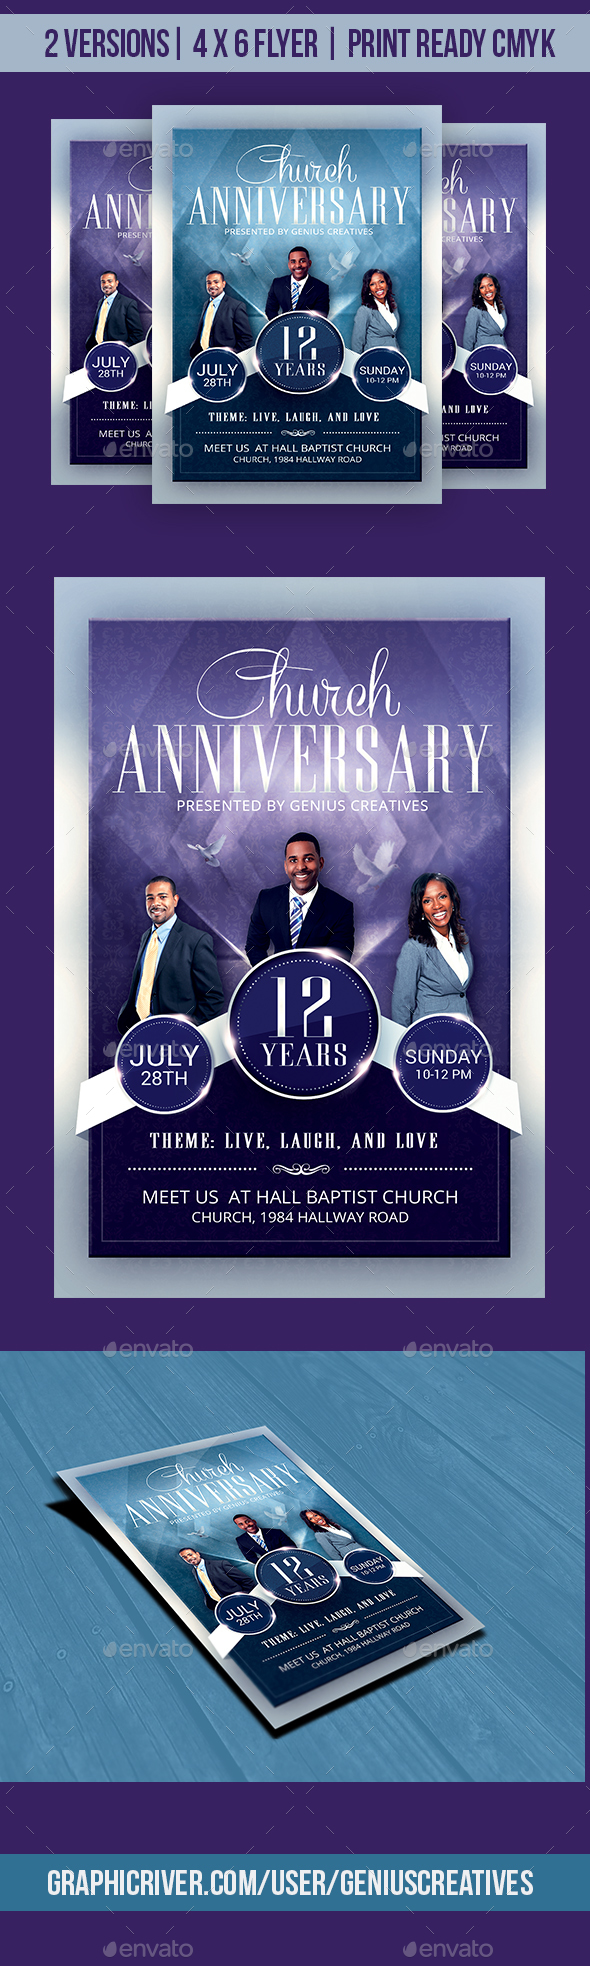 Church Anniversary Flyer Template by GeniusCreatives | GraphicRiver